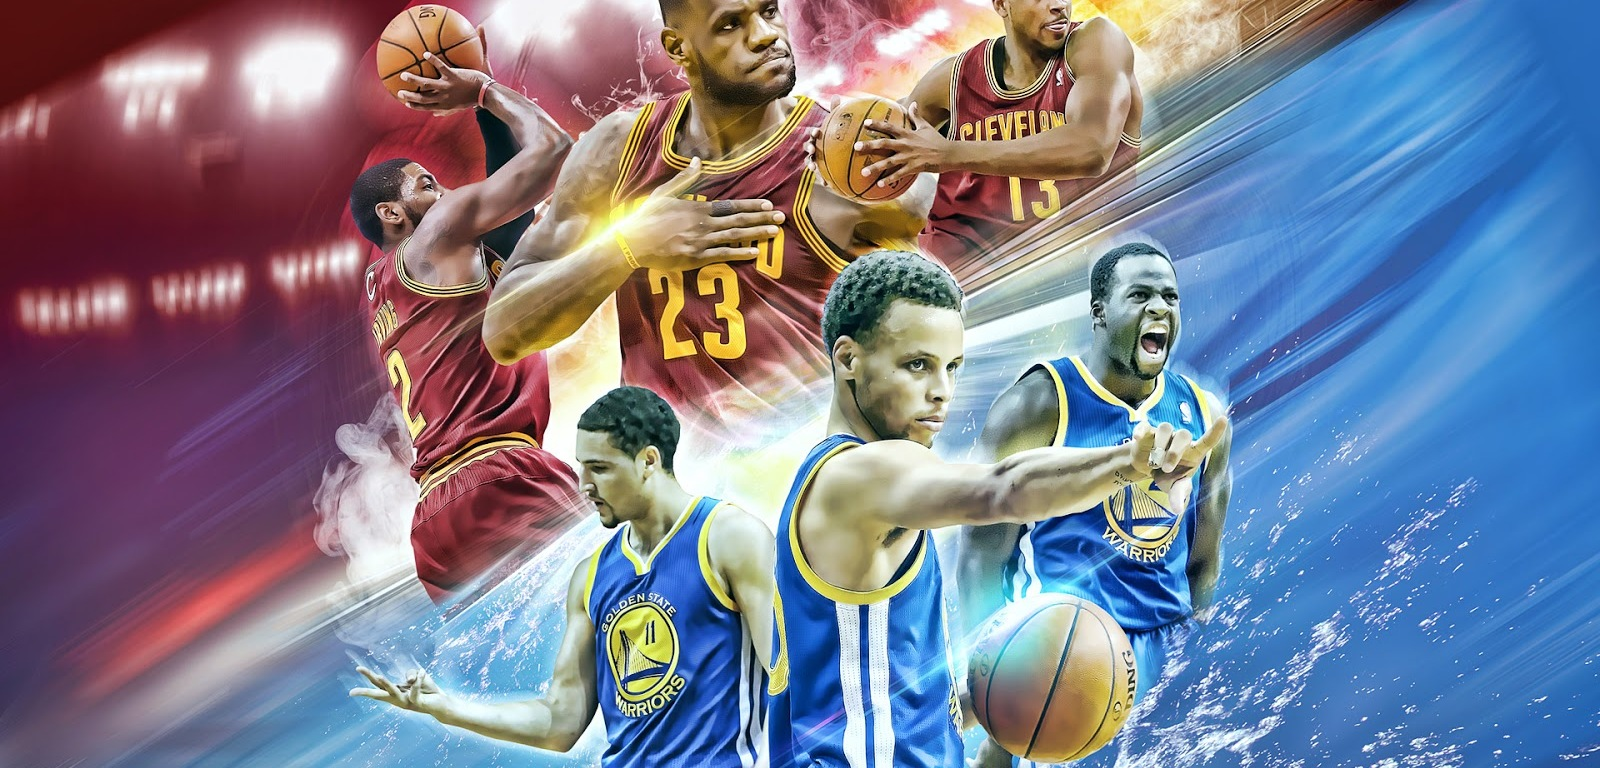 Image result for 2017 nba finals cavs vs warriors